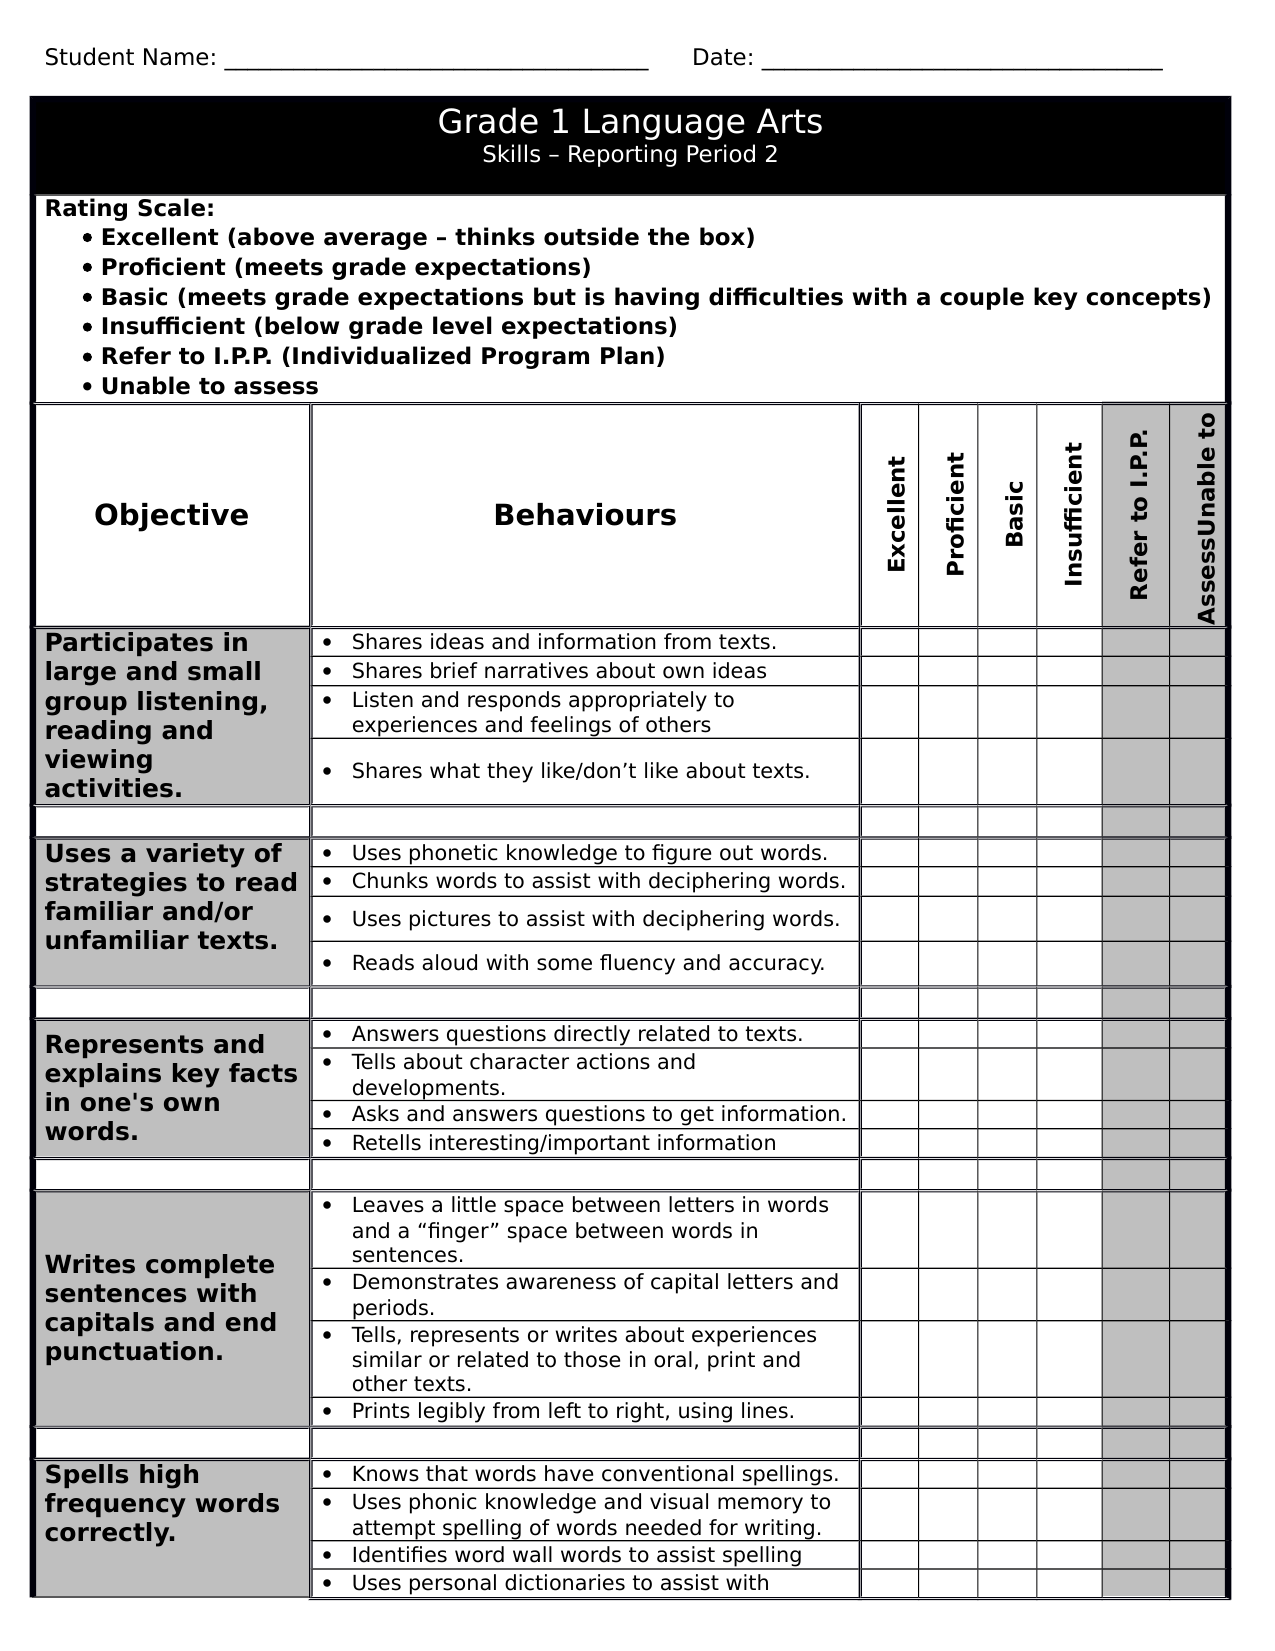 Gr 1 LA Checklist 2 Resource Preview